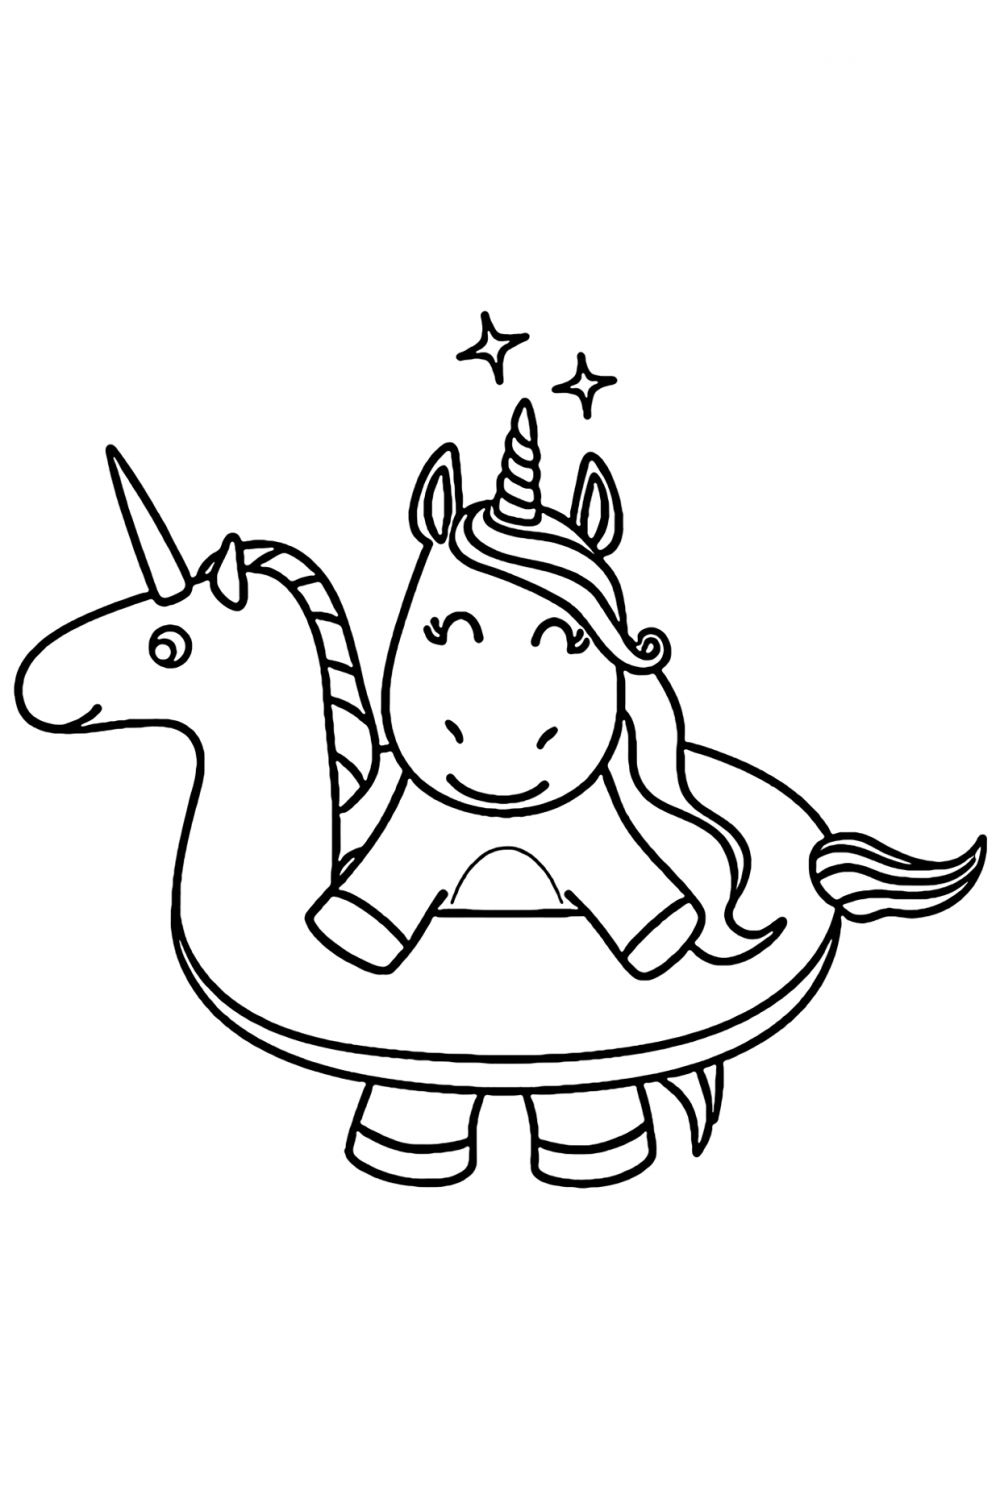 - Cute Unicorn Coloring Pages - YouLoveIt.com